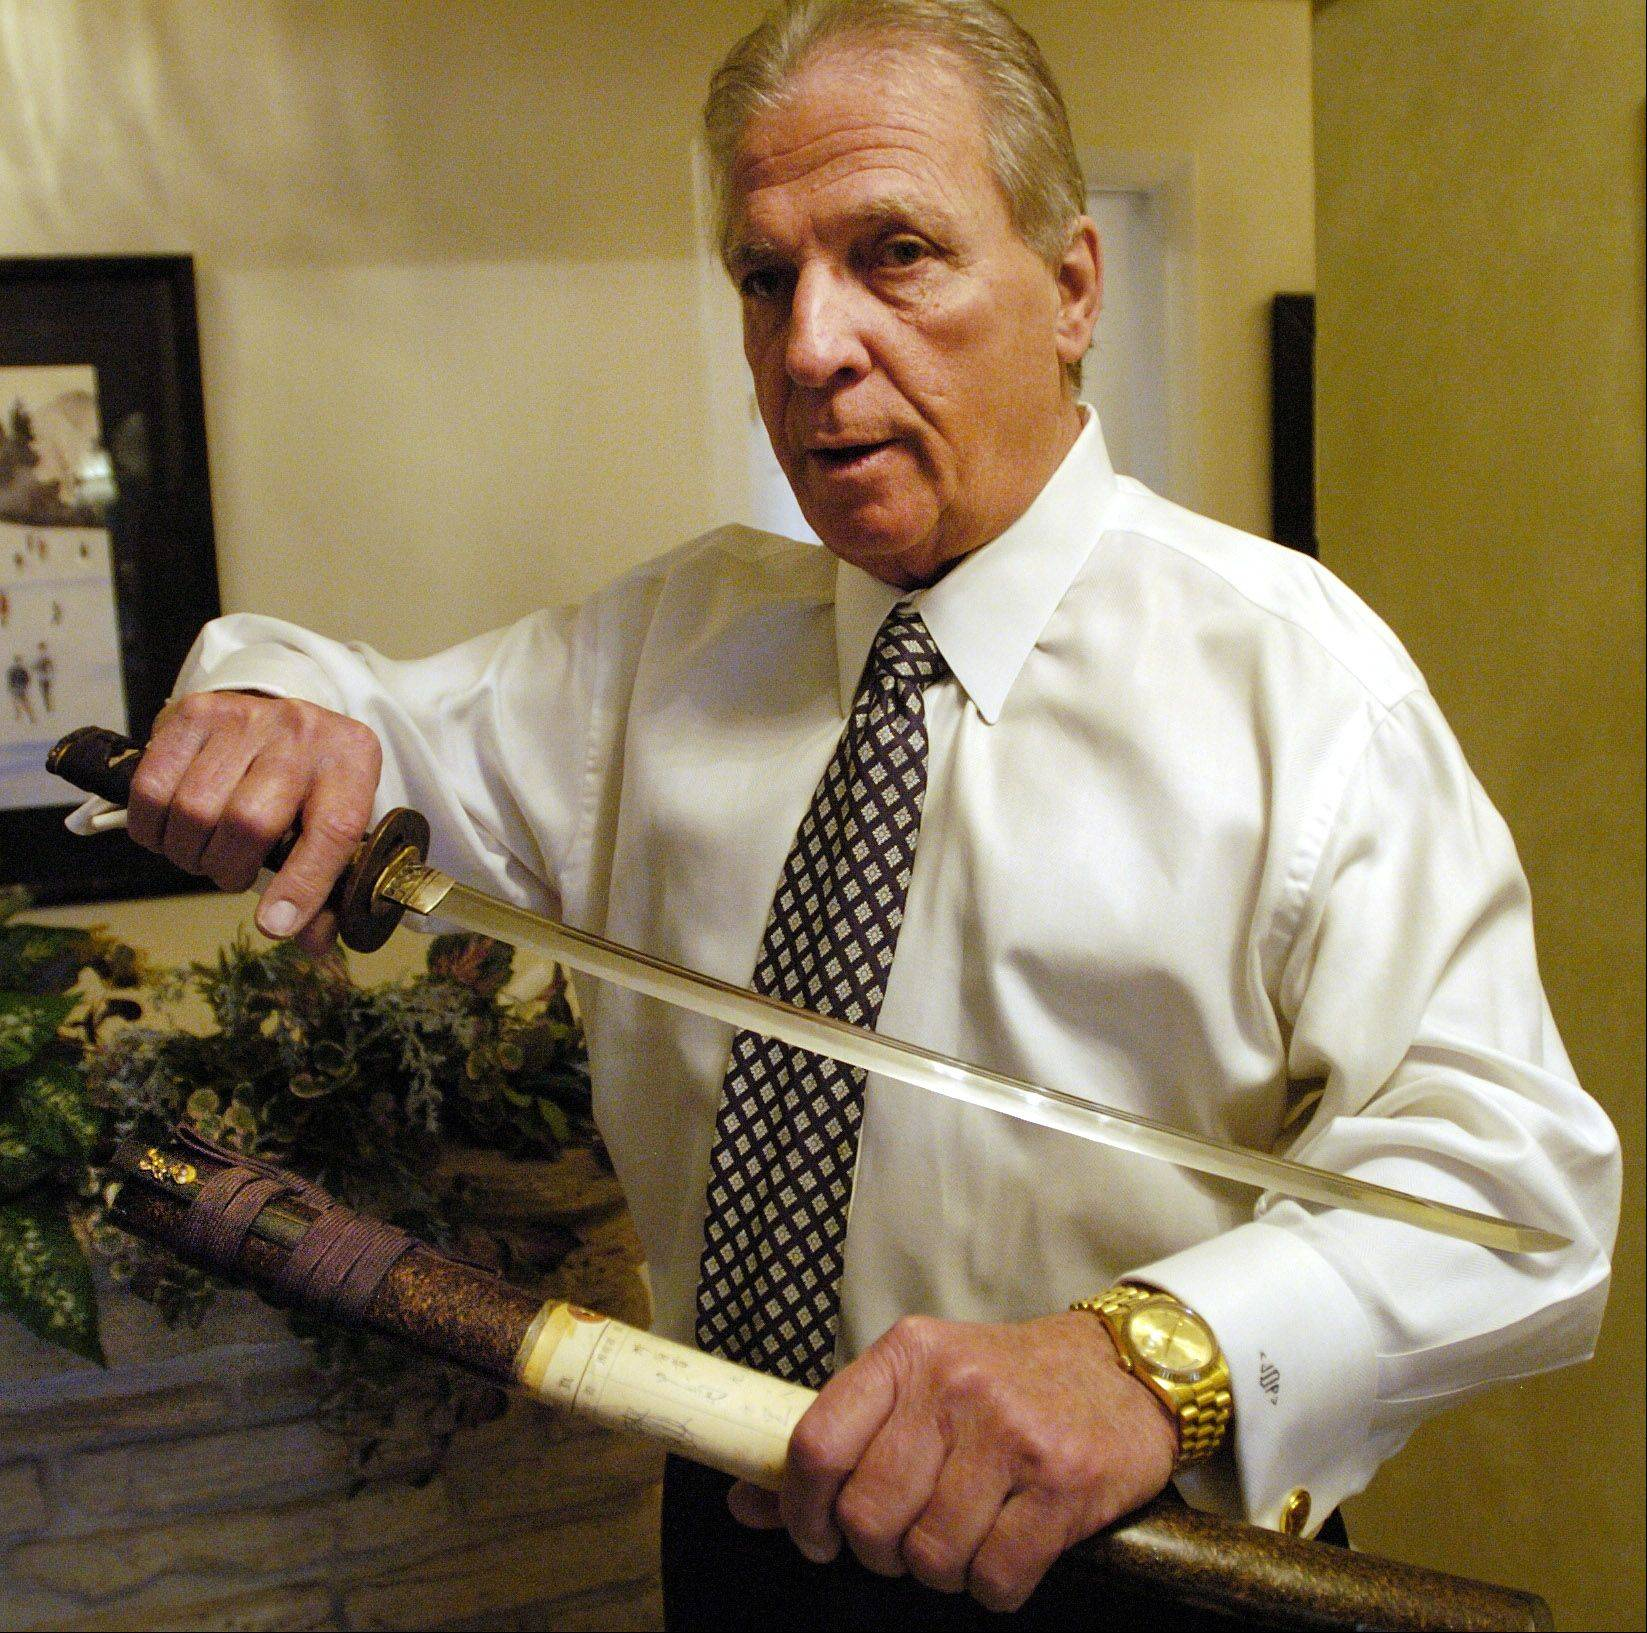 Collecting mostly World War II souvenirs, Jim Dryden of Hawthorn Woods makes room for this 500-year-old wakizashi, a Japanese samurai sword.